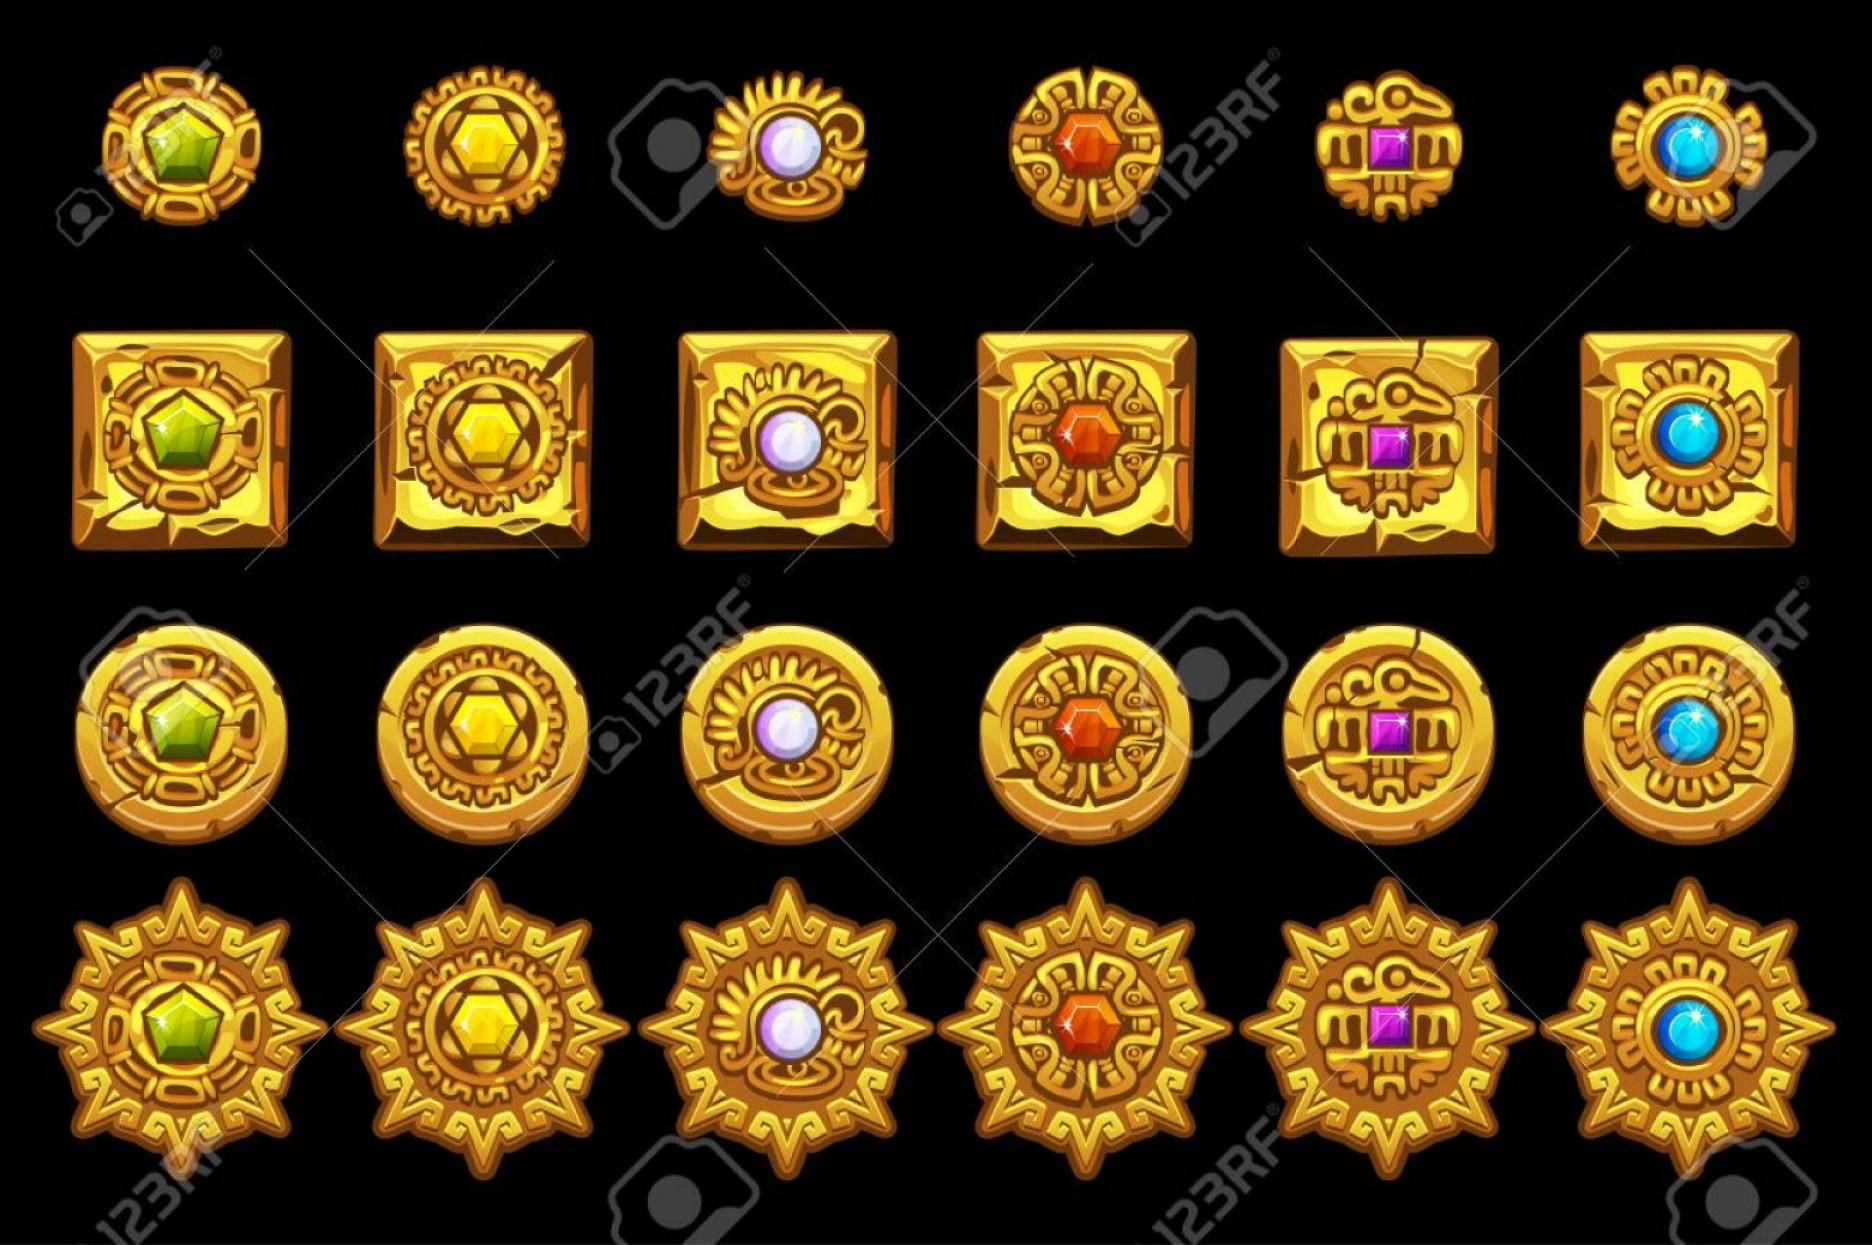 Mayan Sun Gold Vector Png: Photostock Vector Vector Maya Icons American Aztec Mayan Culture Golden Symbols Isolated On Separate Layers